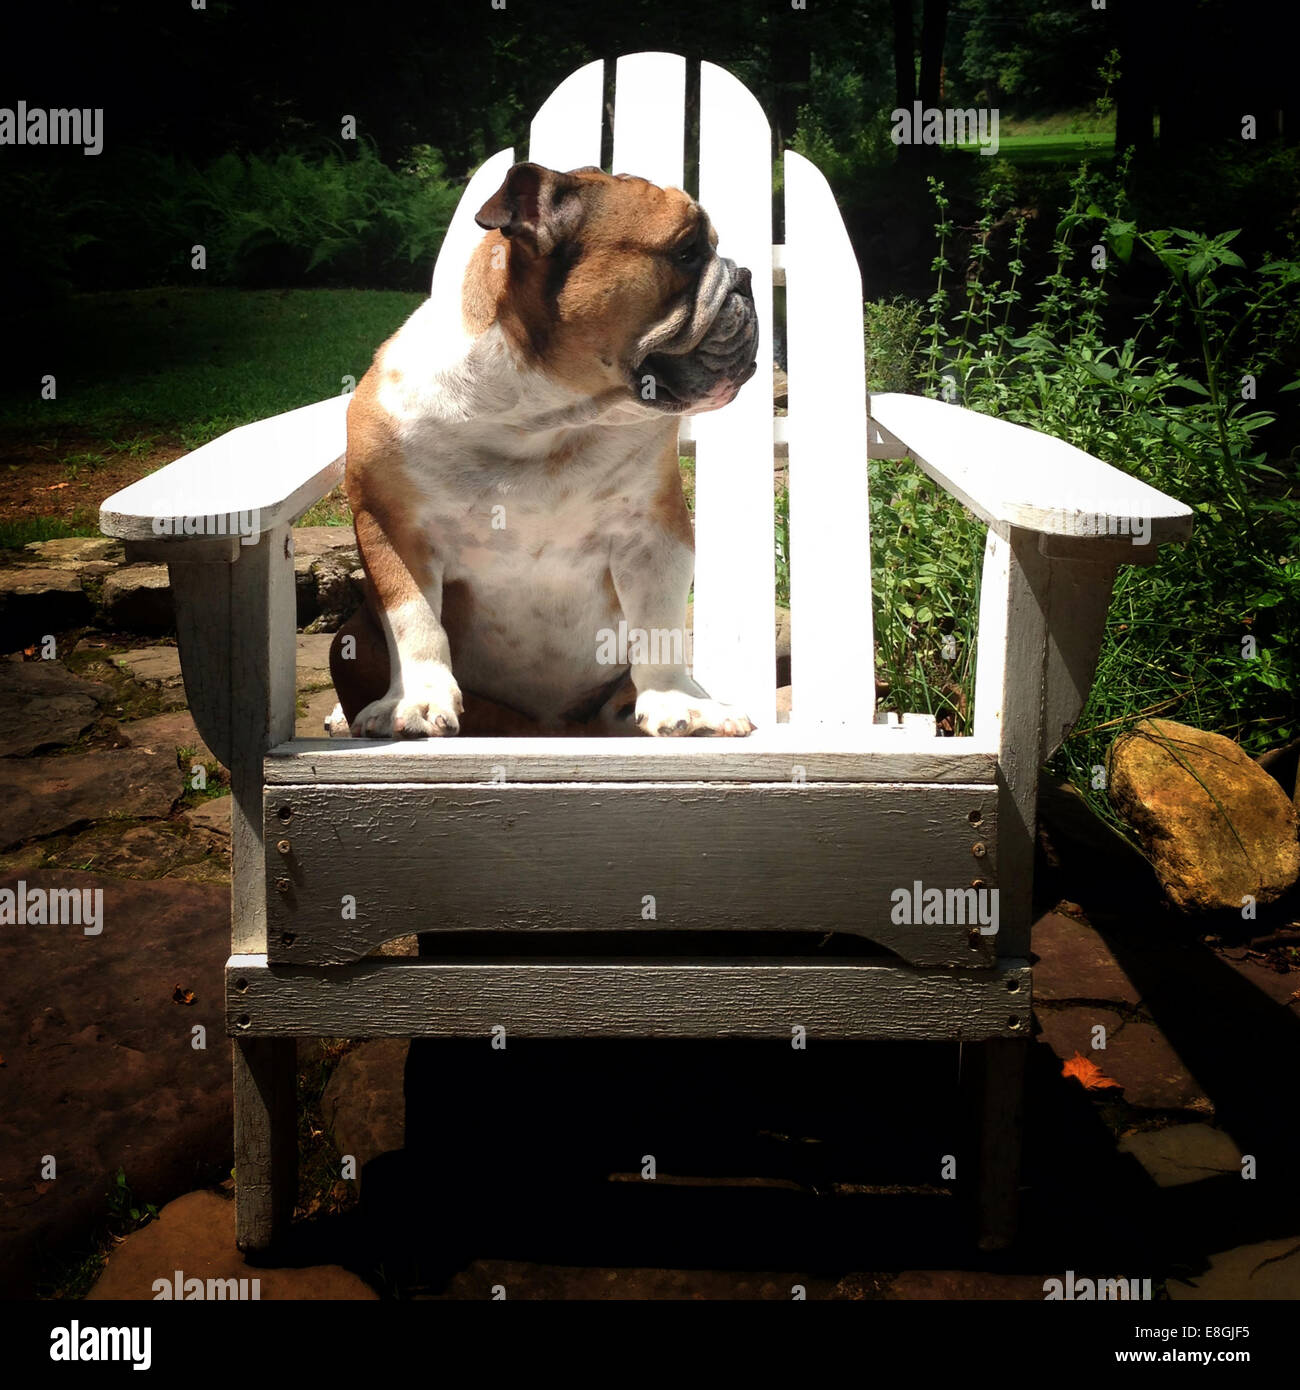 Dog sitting on a wooden chair in the garden Stock Photo